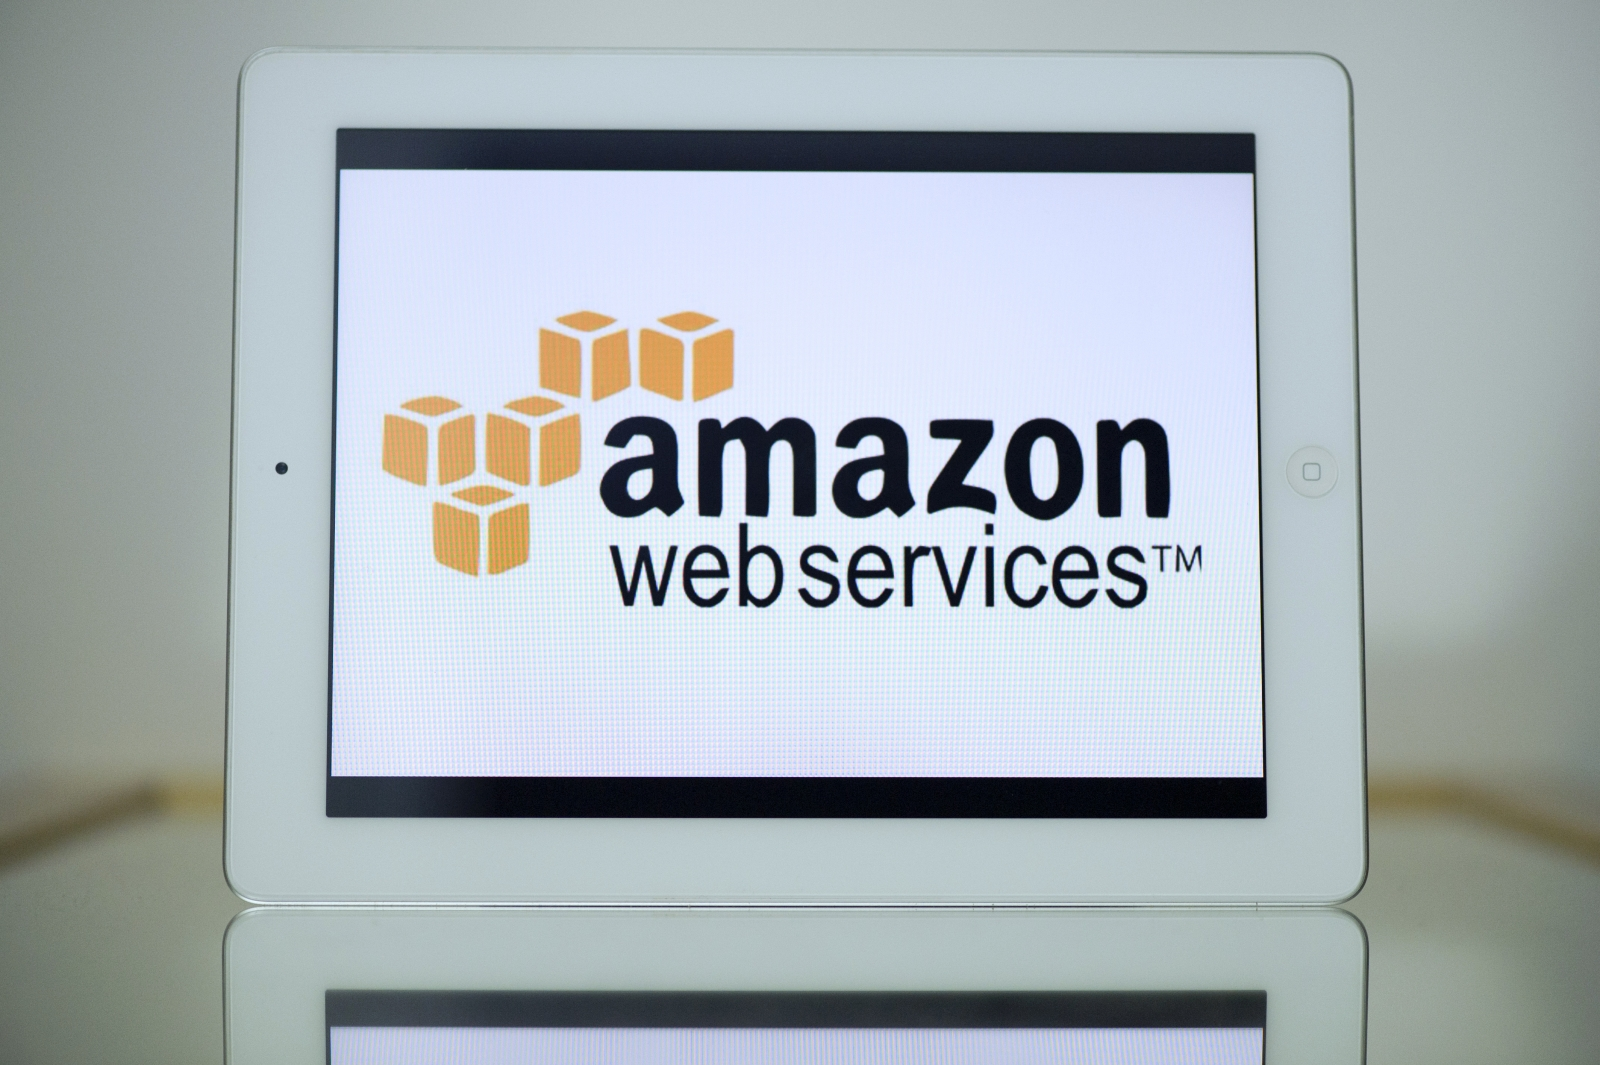 Amazon testing new cloud services